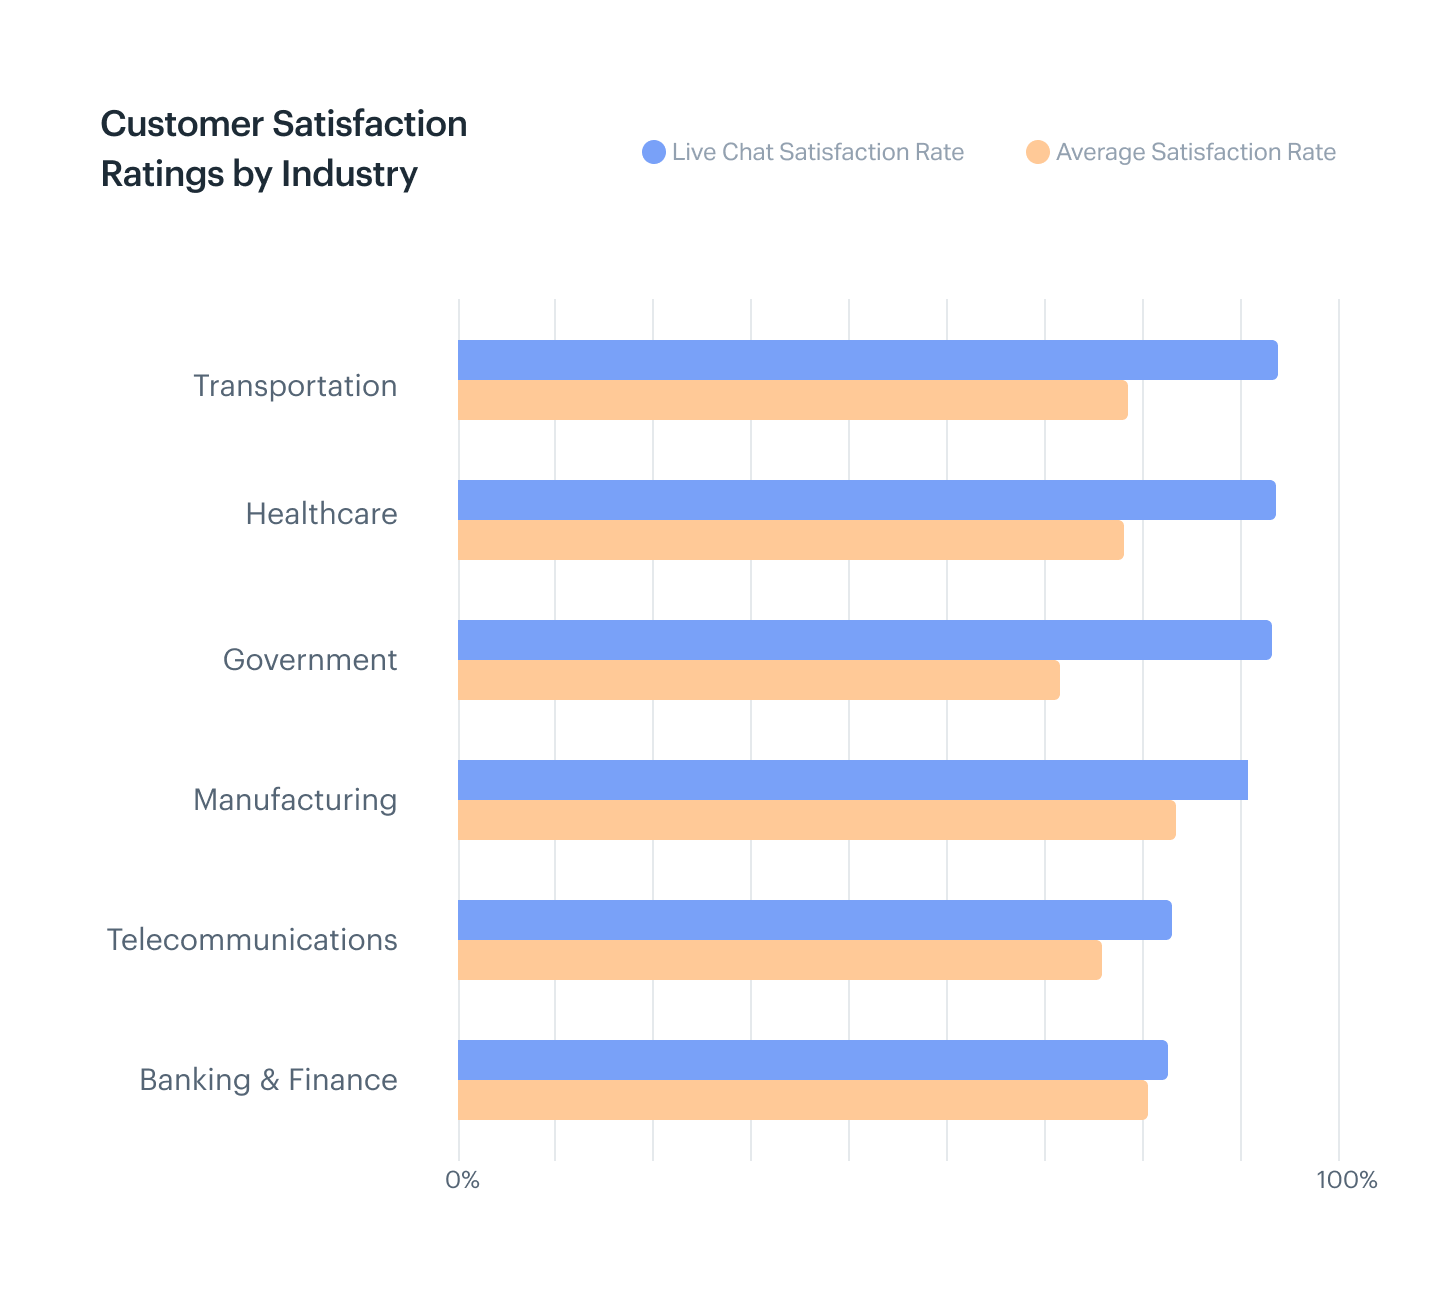 Live chat satisfaction ratings are higher than the average customer satisfaction ratings in the transportation, healthcare, government, telecommunications, and banking and finance industries.